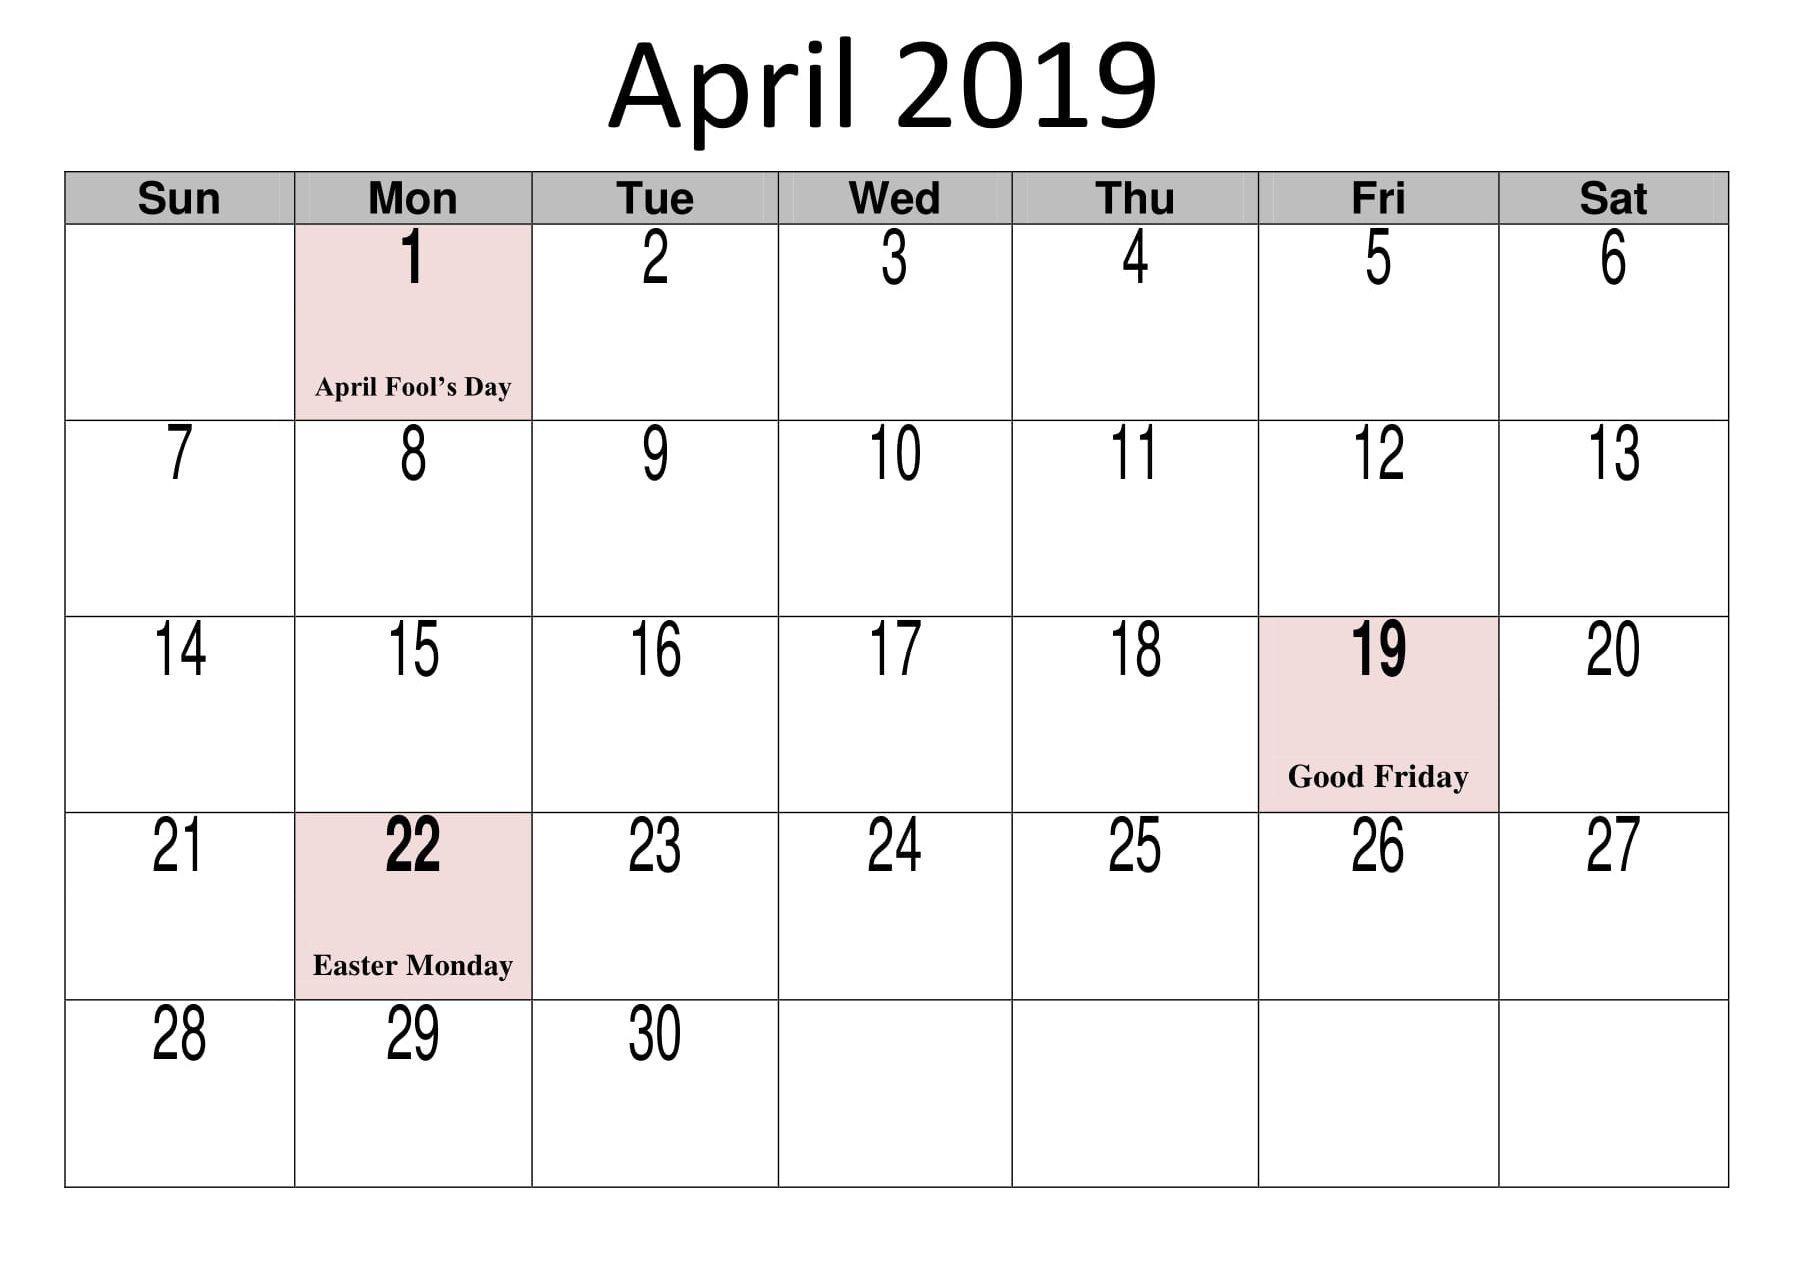 April 2019 Calendar Template Printable In Pdf Word Excel